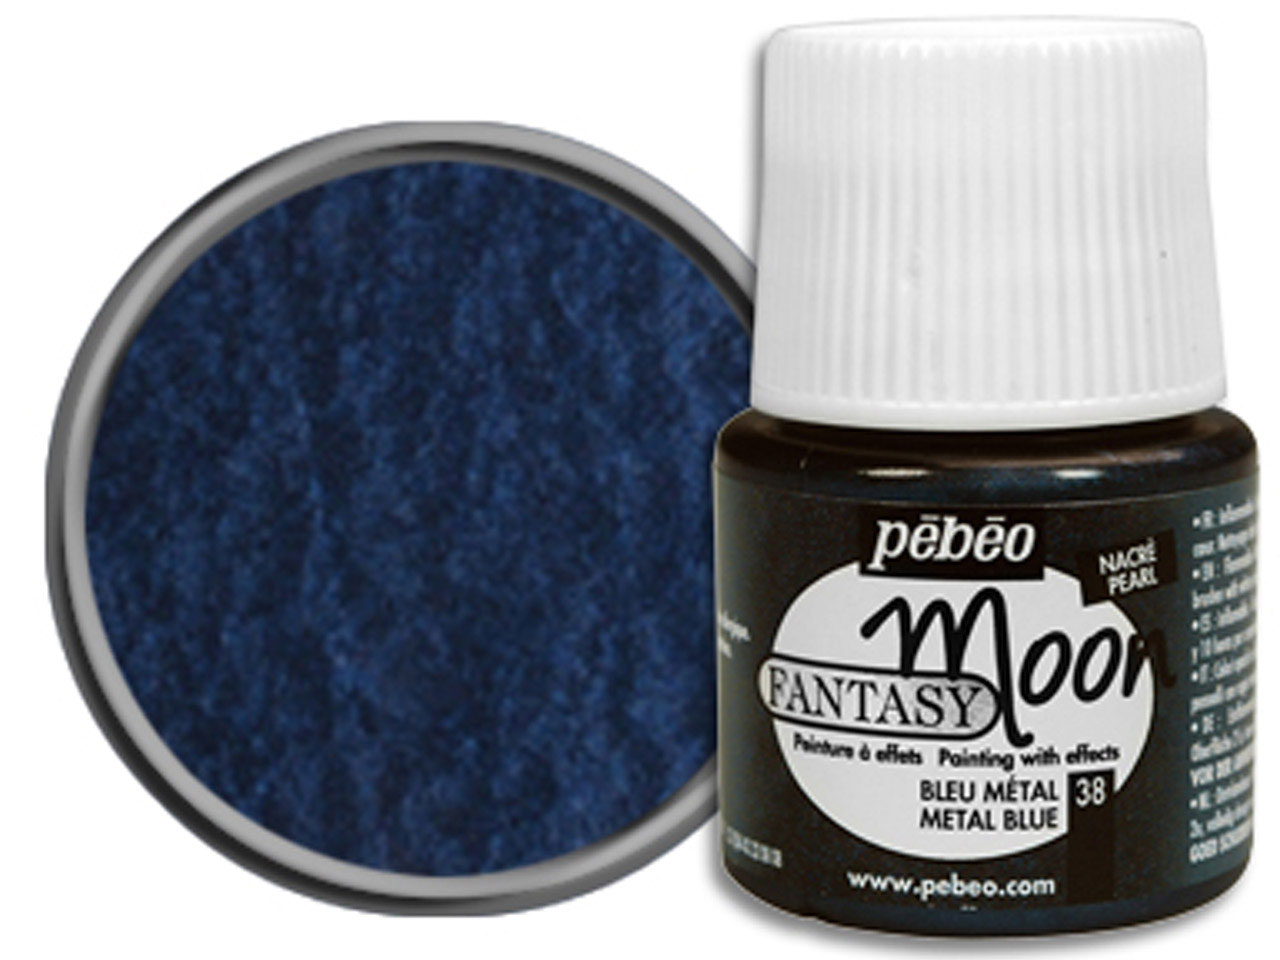 Pebeo Fantasy Moon, Metal Blue,    45ml